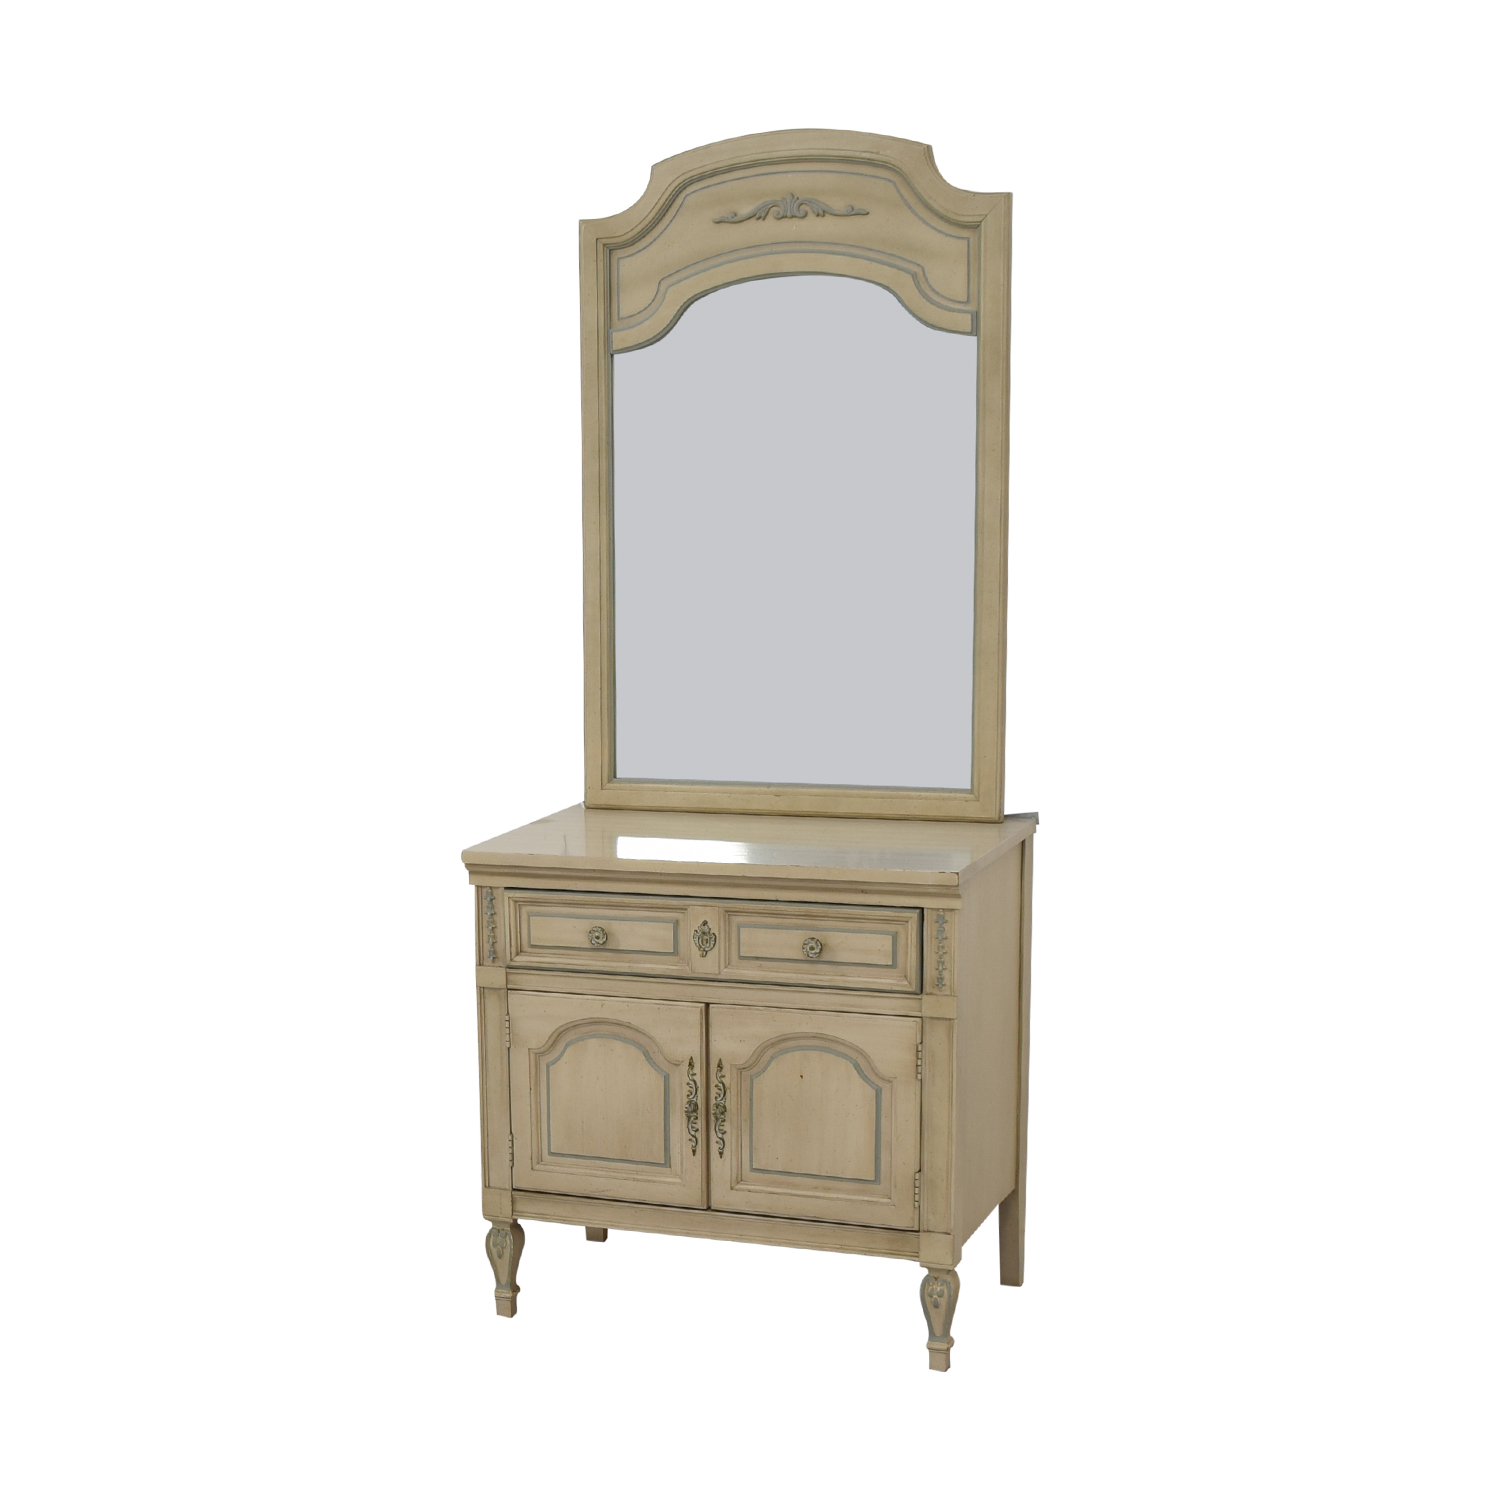 buy Dixie Furniture Company Dixie Furniture Chest with Mirror online